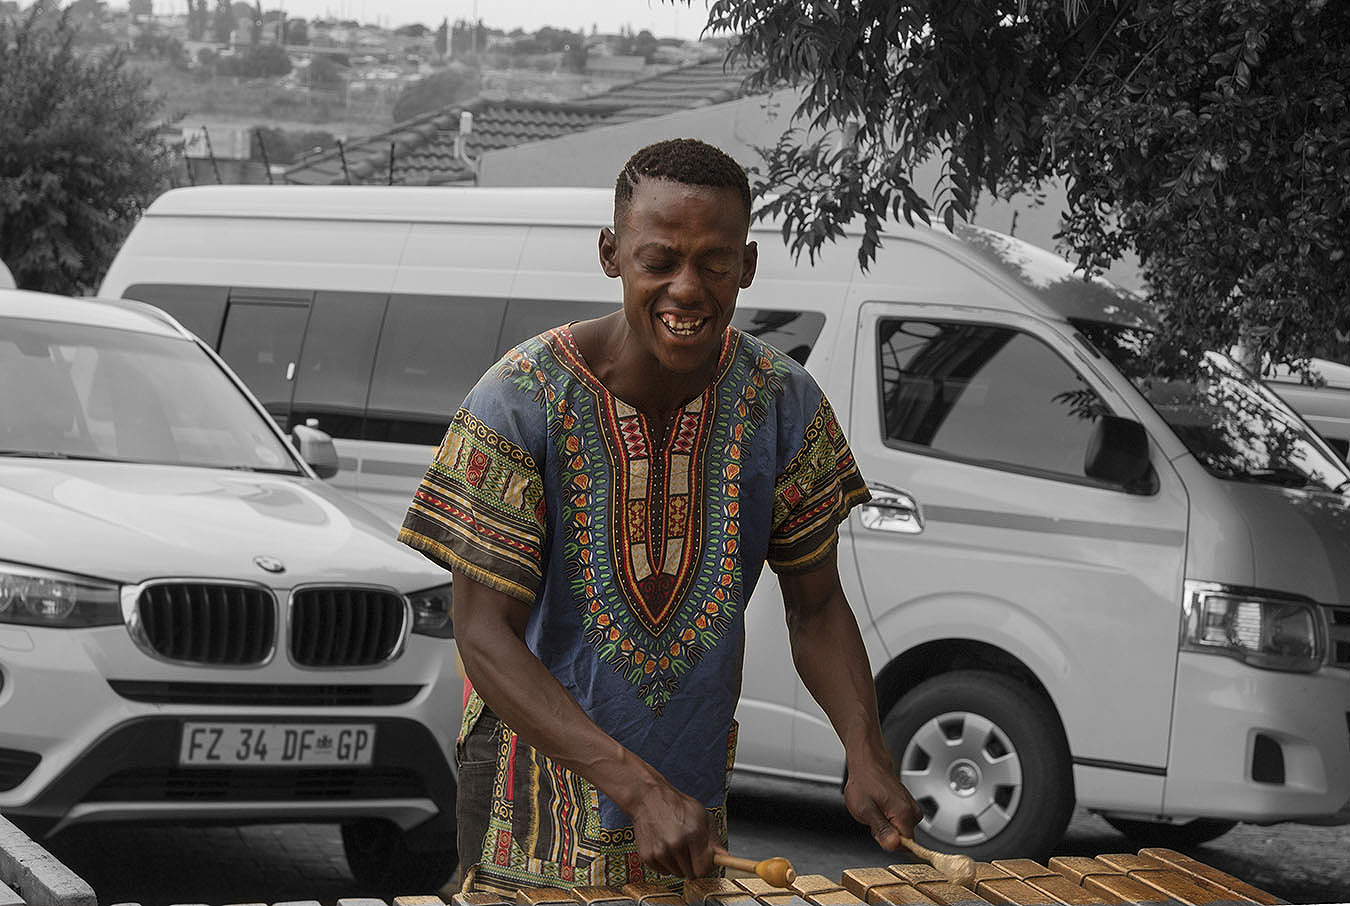 A local South African playing music on the road